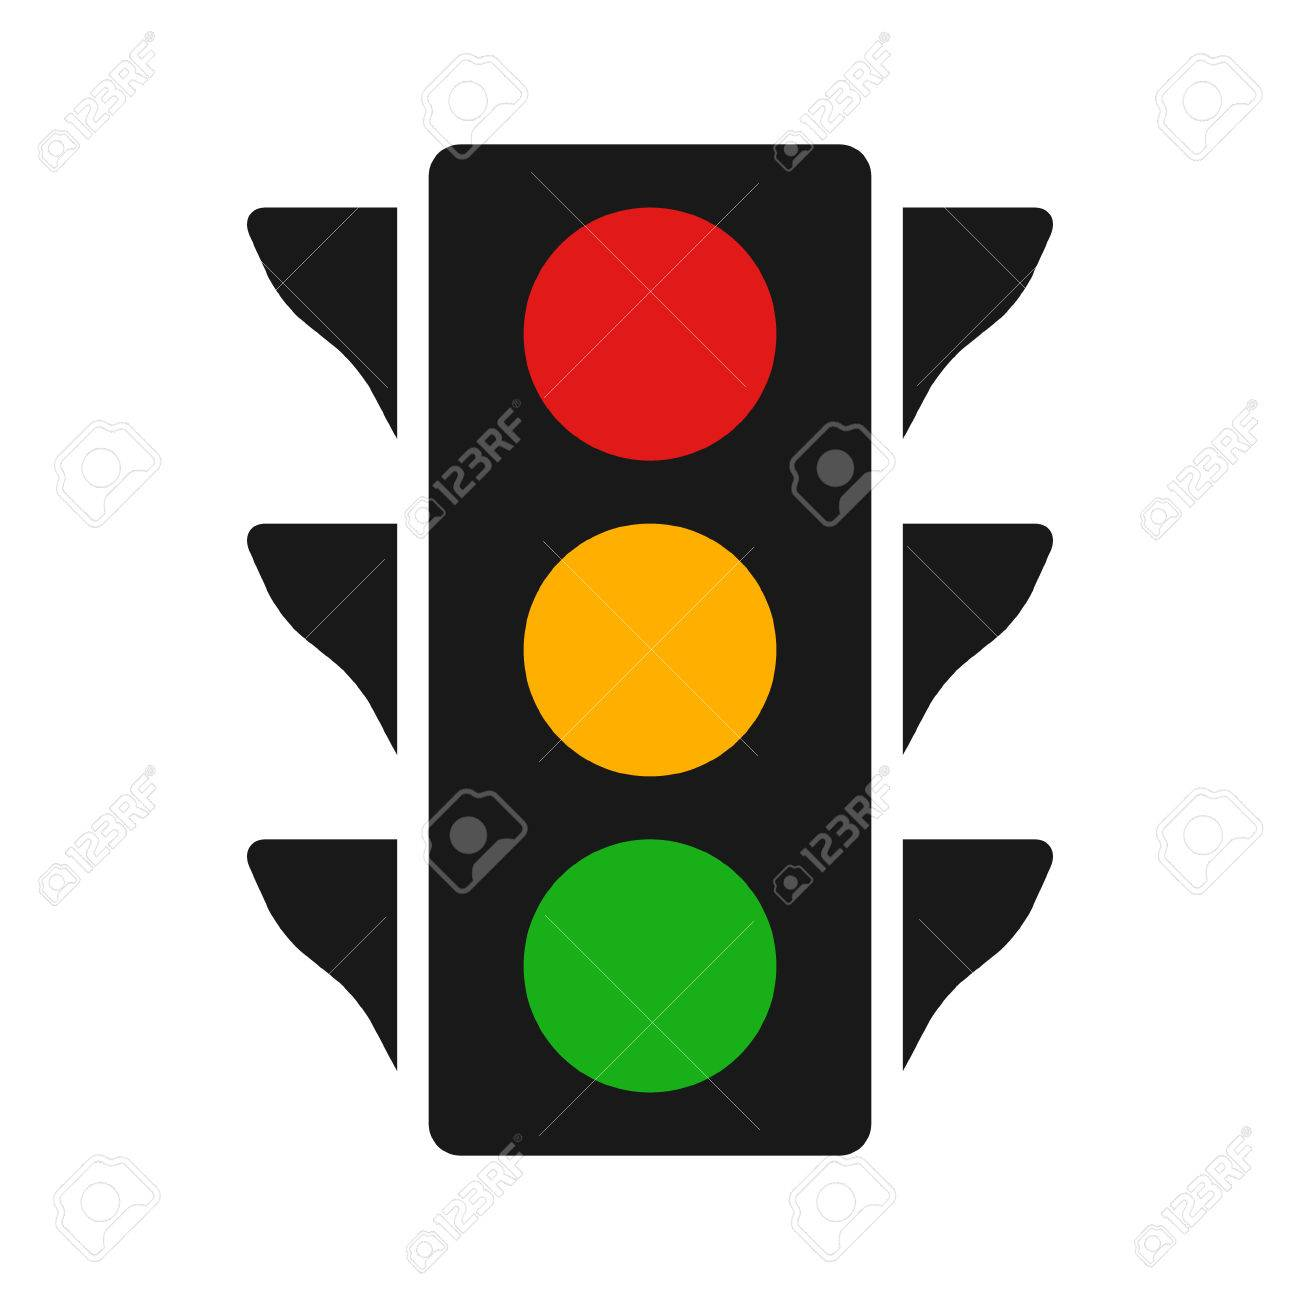 Traffic Control Light / Signal With Red, Yellow And Green Color ... for Traffic Light Red Icon  545xkb